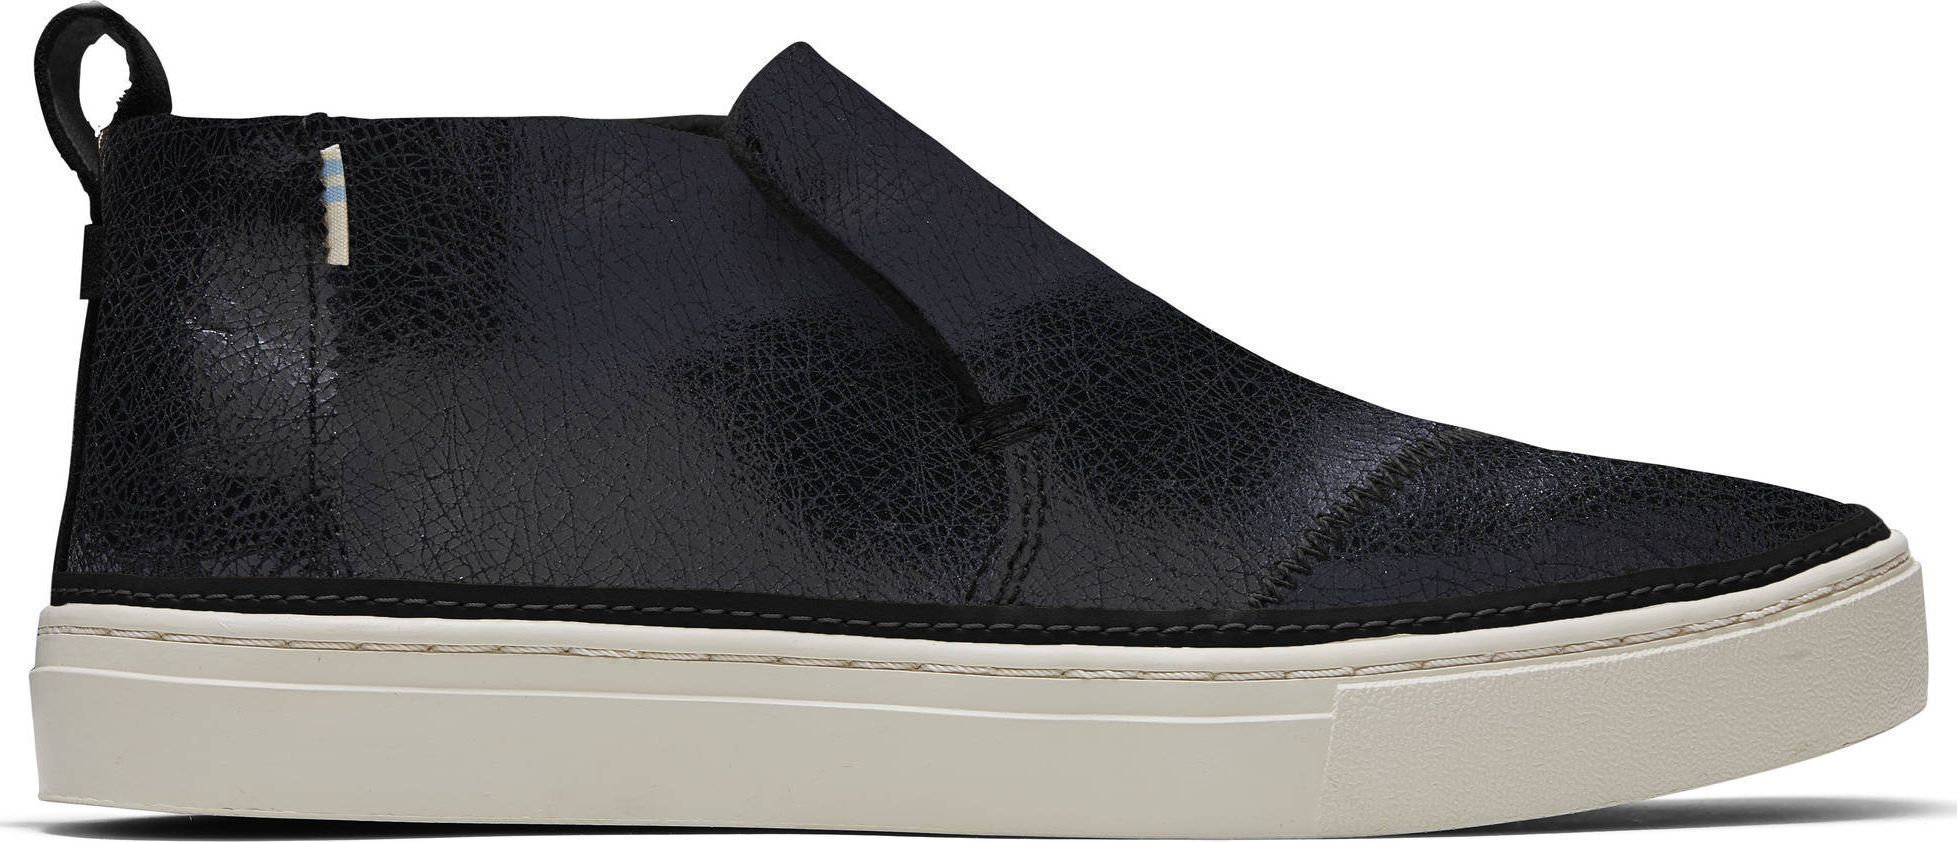 TOMS Metallic Crackle Suede Women's Paxton Slip-On Black 36